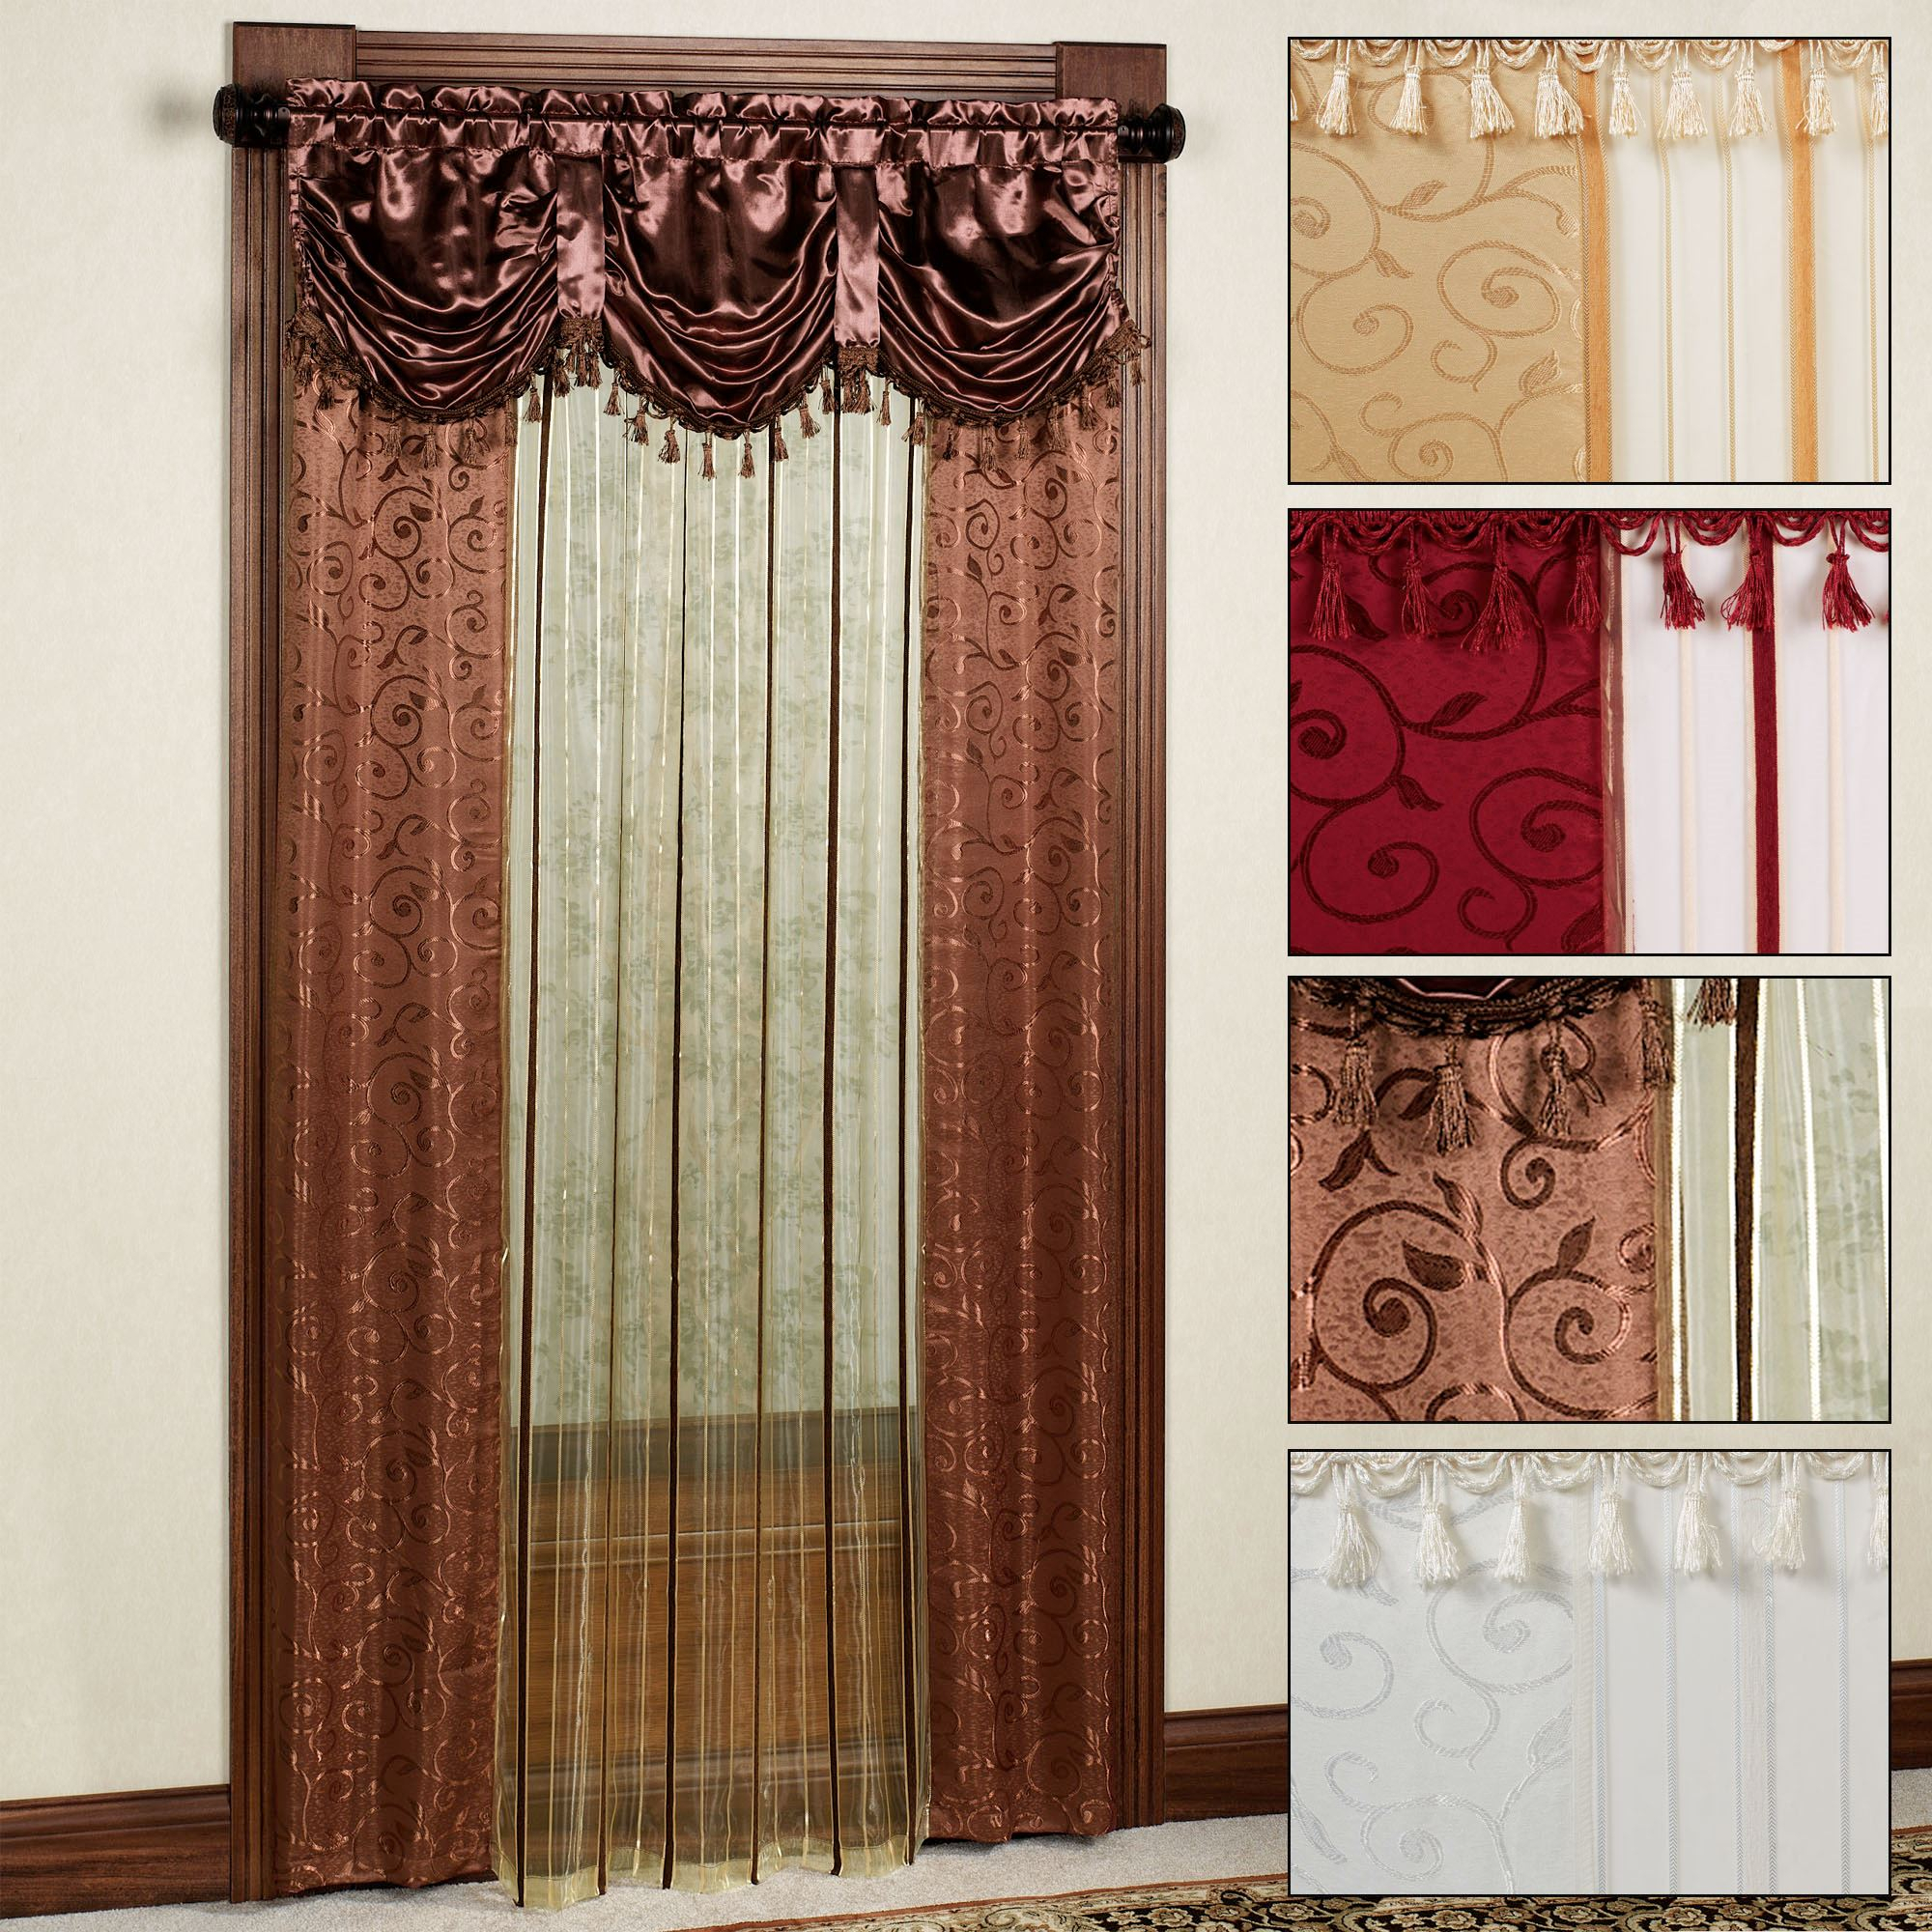 Modern Sheer Curtain Panels With Designs – Creative Design Ideas With Laya Fretwork Burnout Sheer Curtain Panels (View 13 of 20)